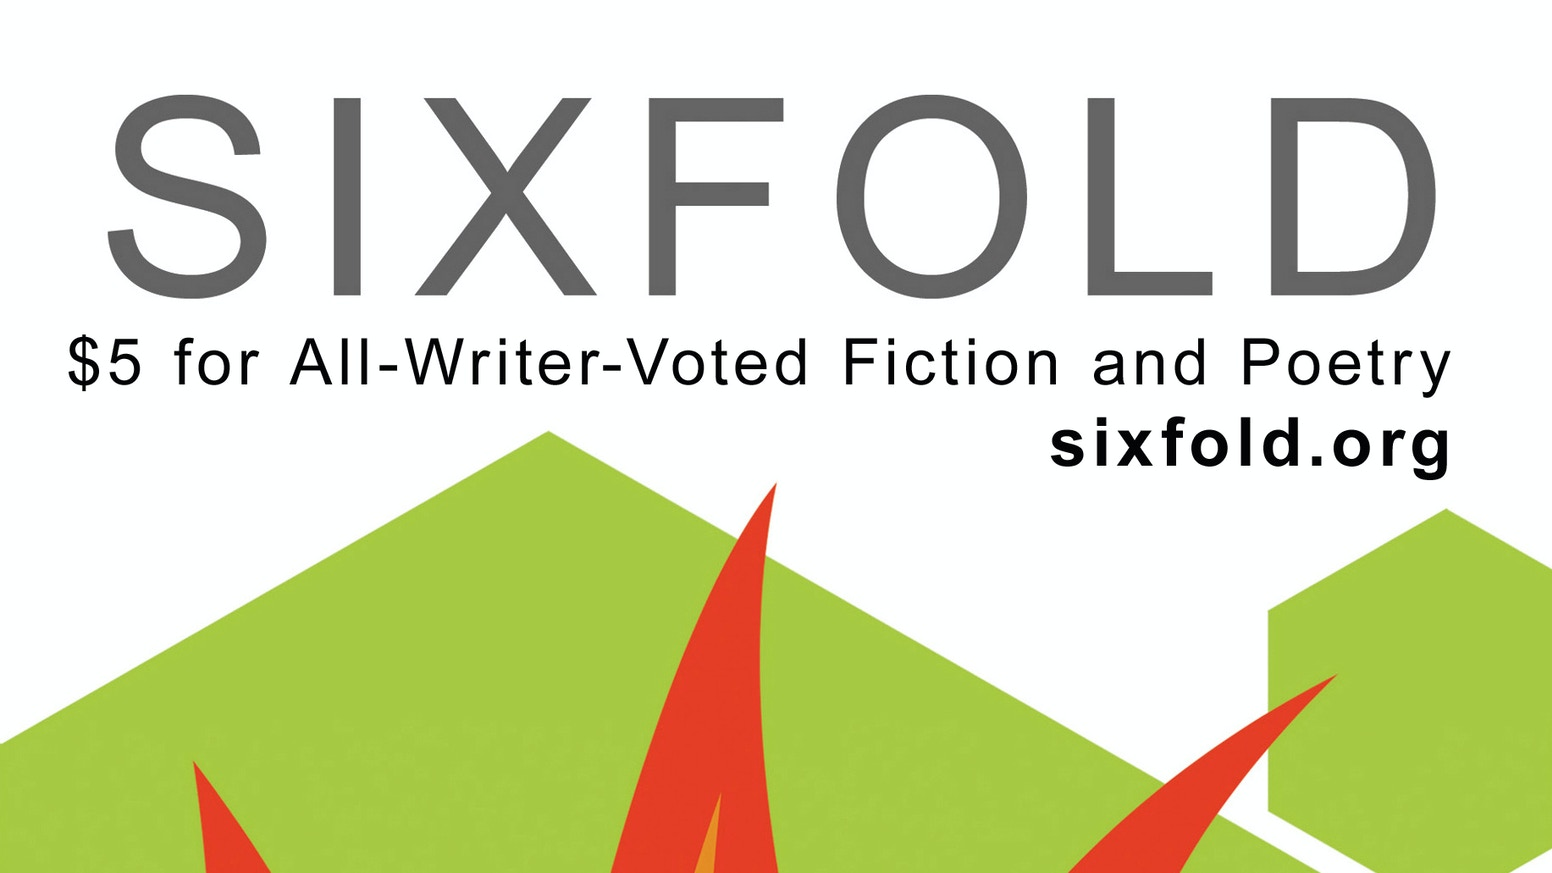 Sixfold | All-Writer-Voted Fiction and Poetry 2018 by